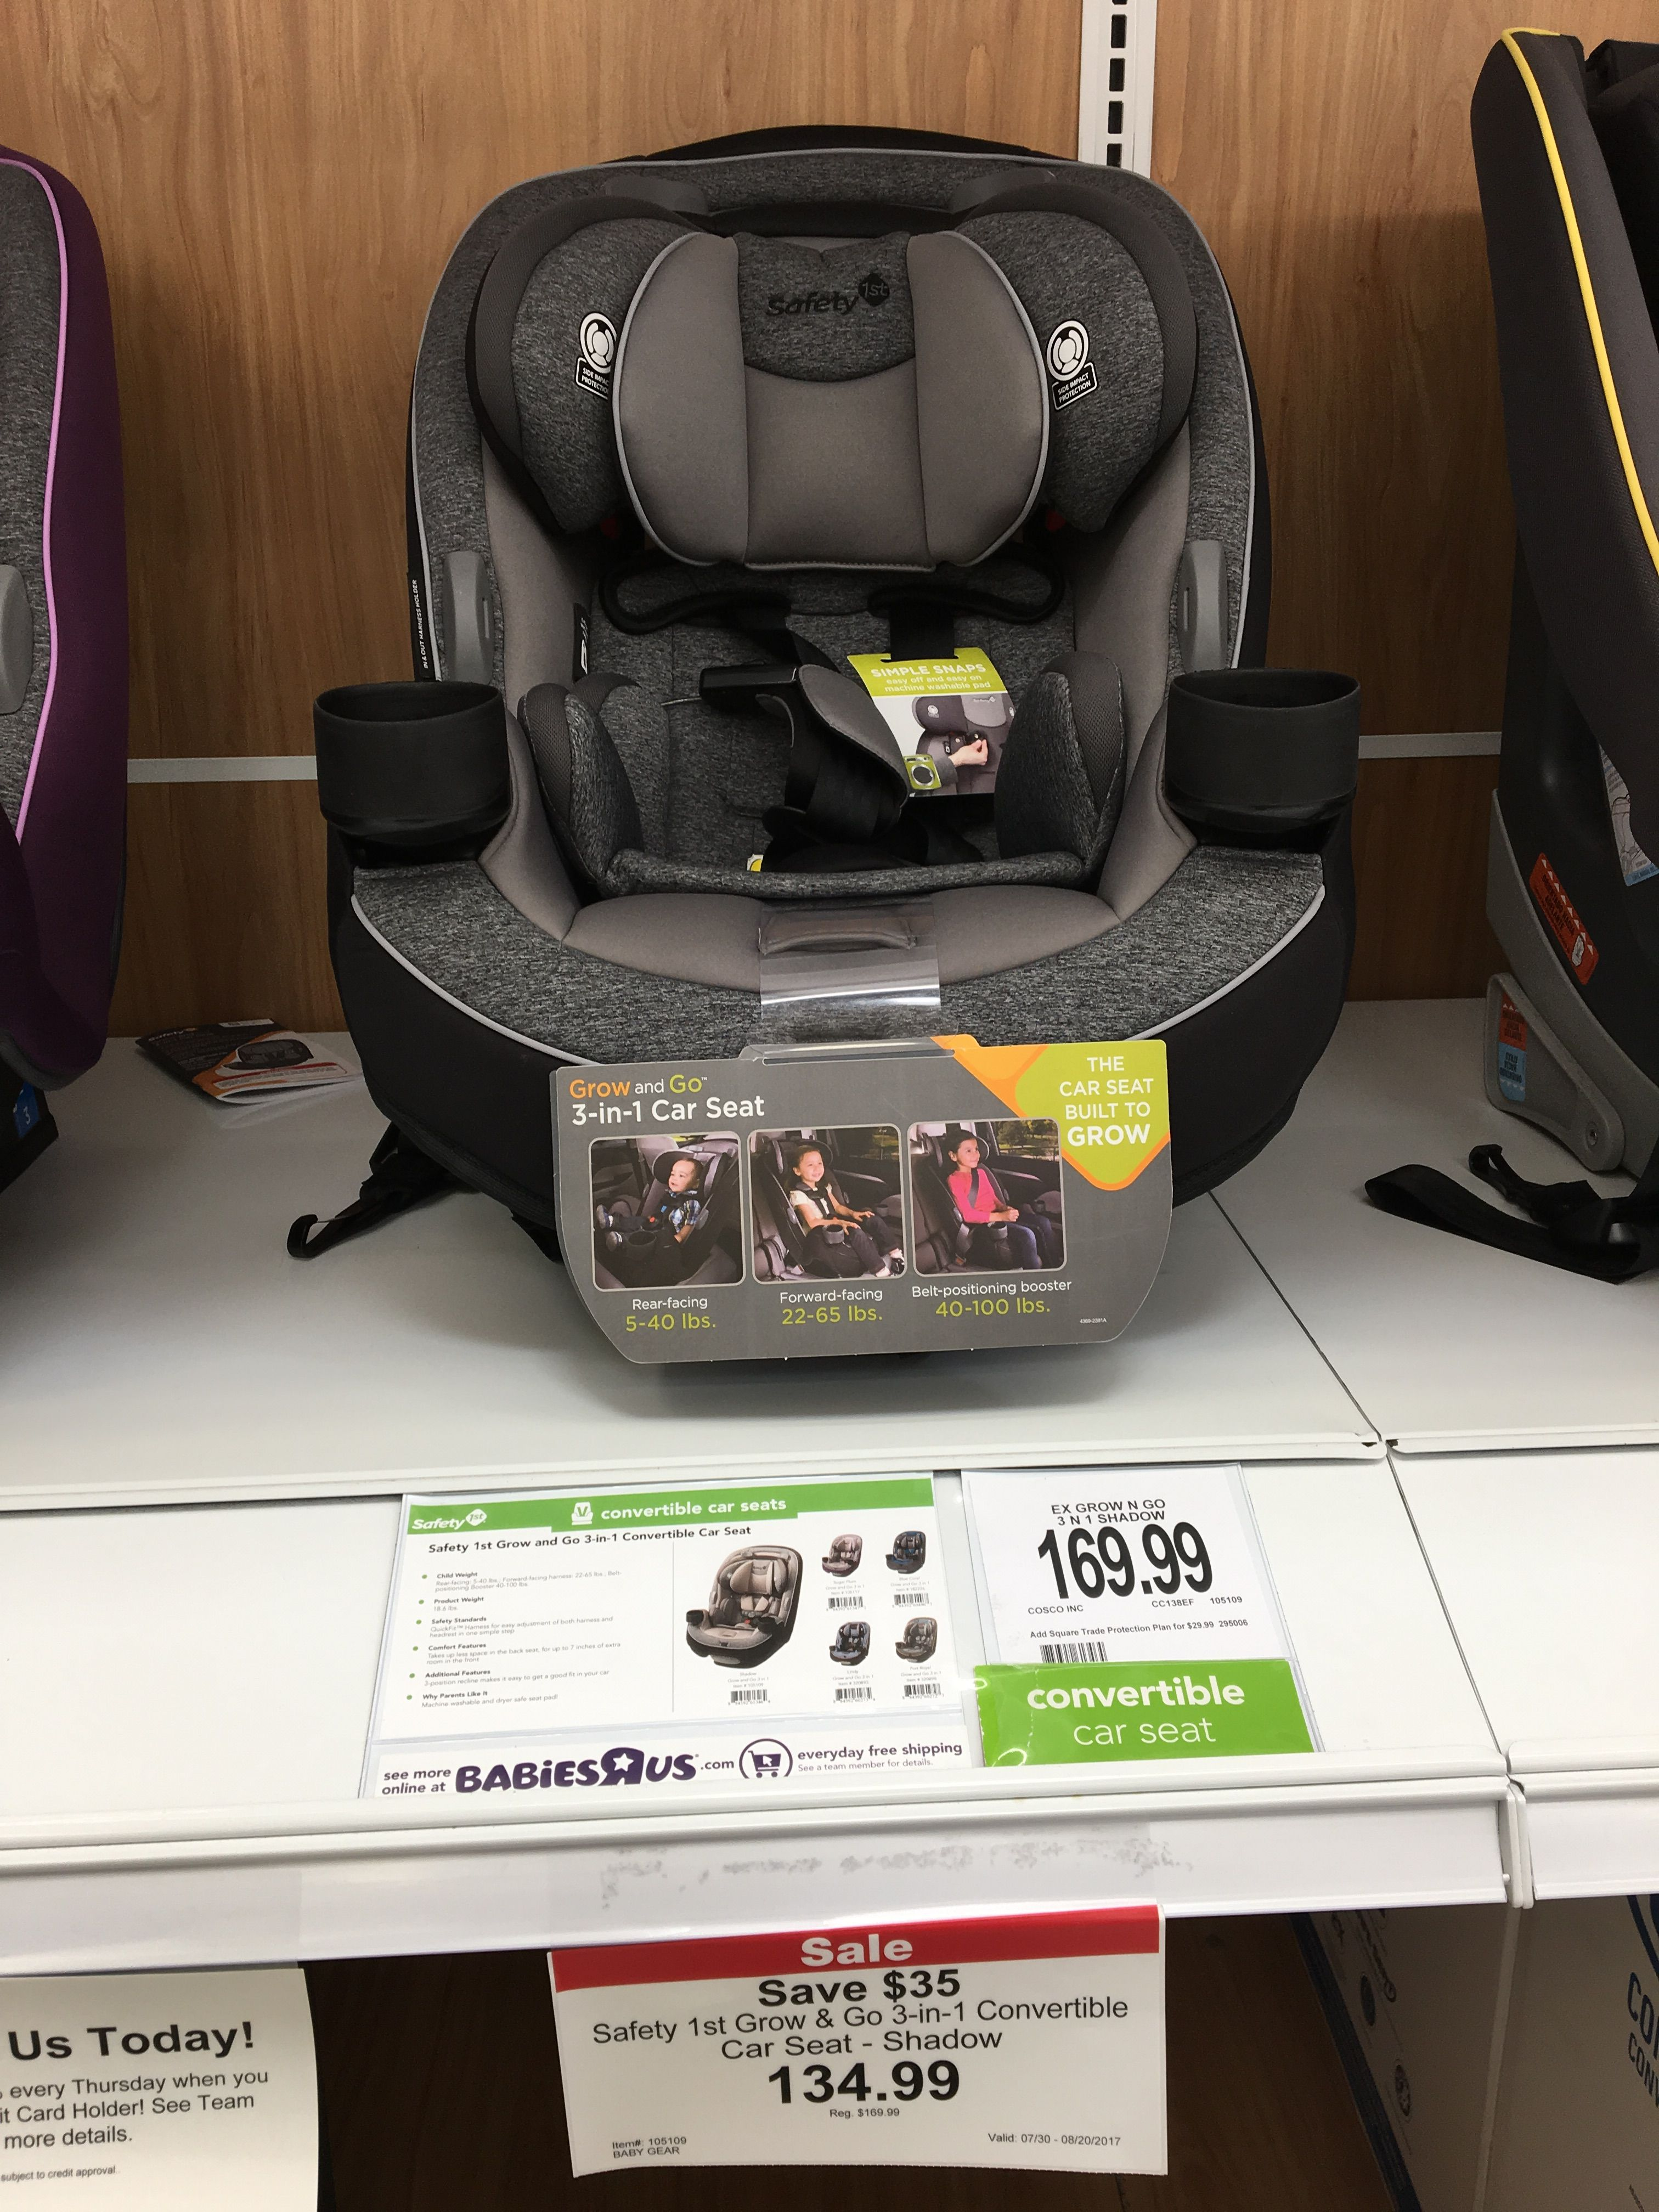 Safety 1st Grow and Go(TM) 3in1 Convertible Car Seat